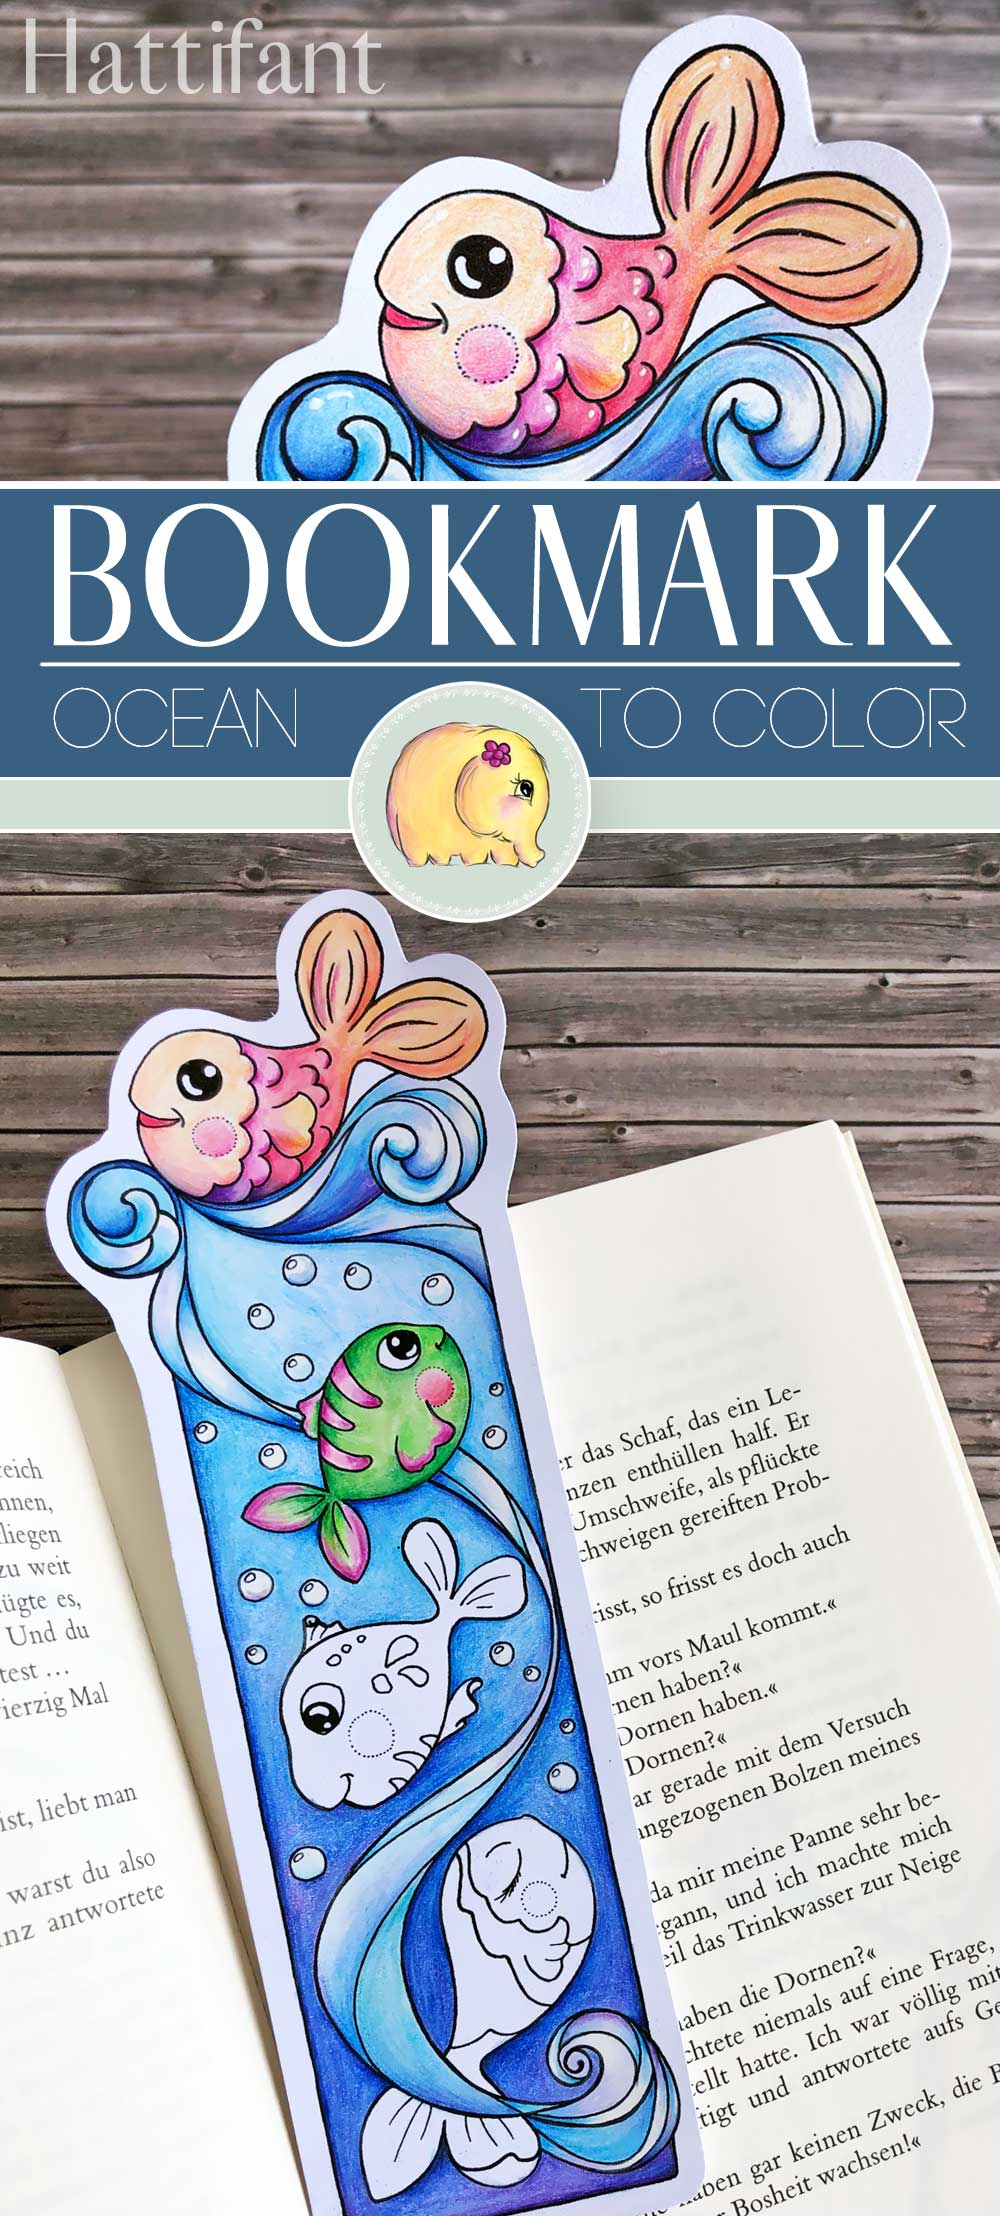 BOOKMARK   Ocean to Color - Hattifant   Coloring bookmarks ...